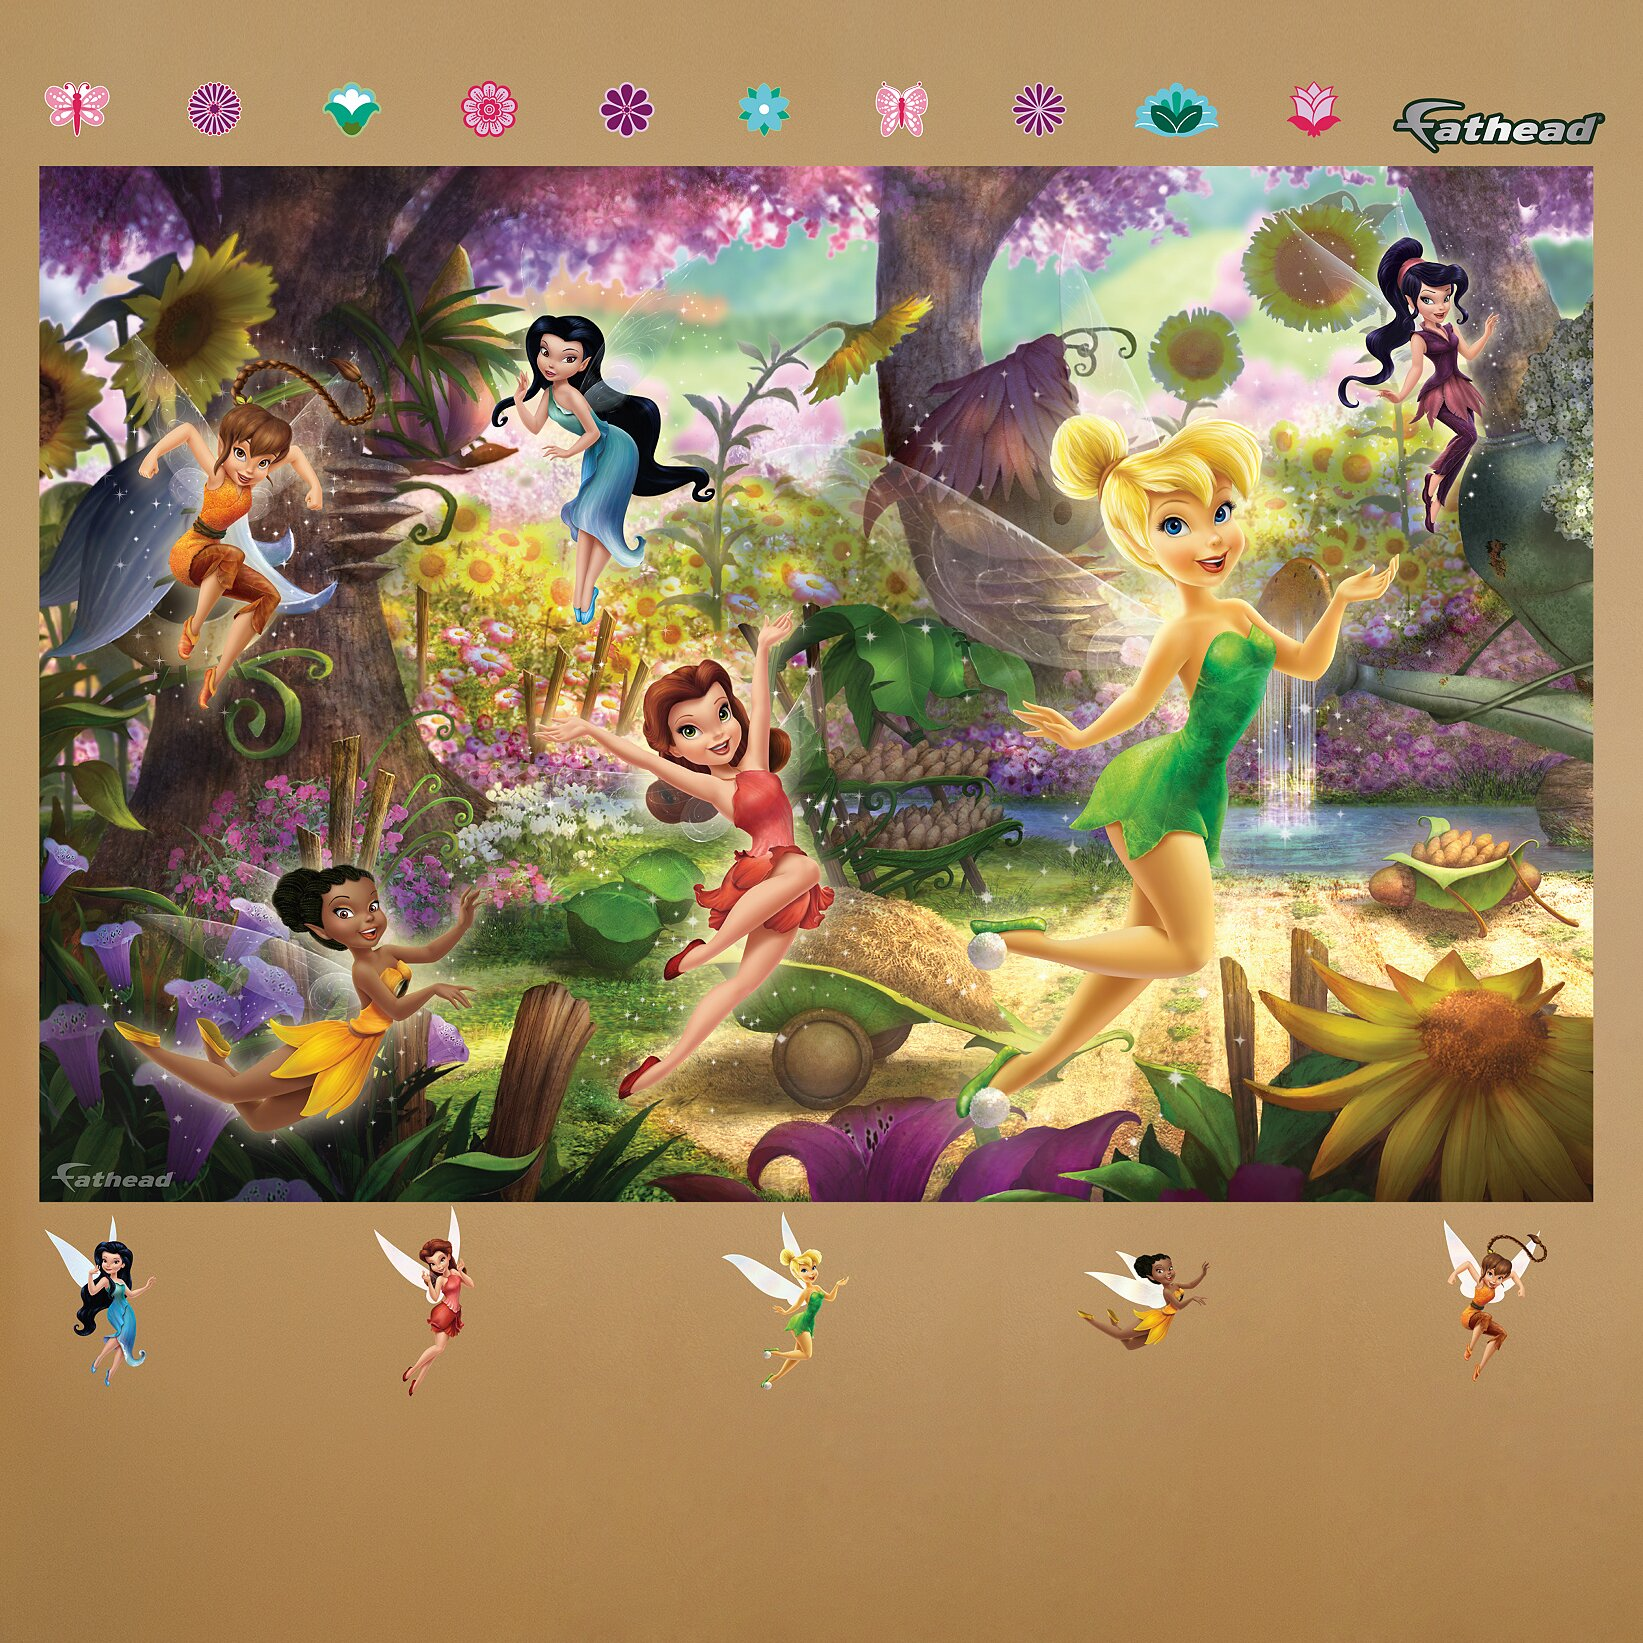 Fathead disney fairies wall mural wayfair for Disney wall mural